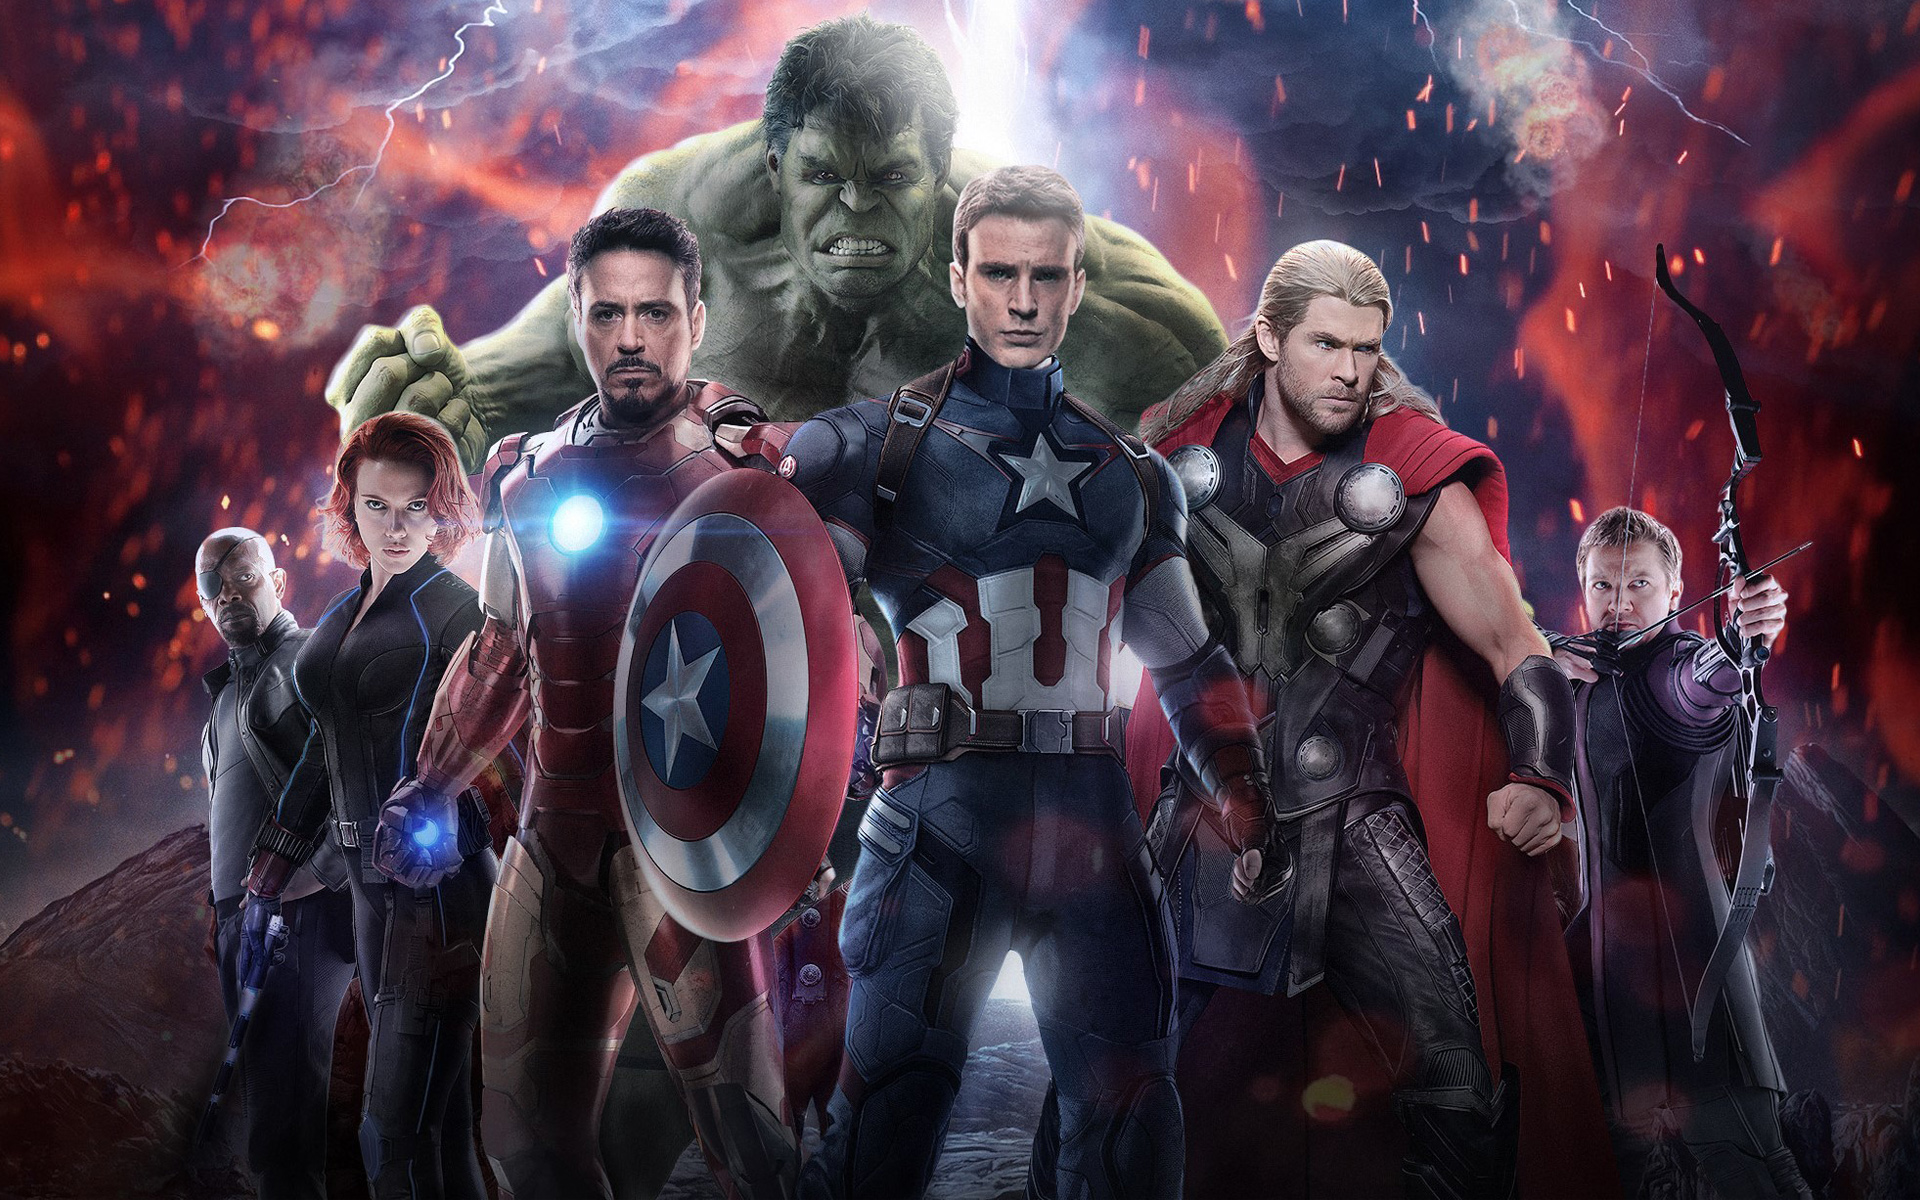 the avengers age of ultron wallpapers high quality | download free